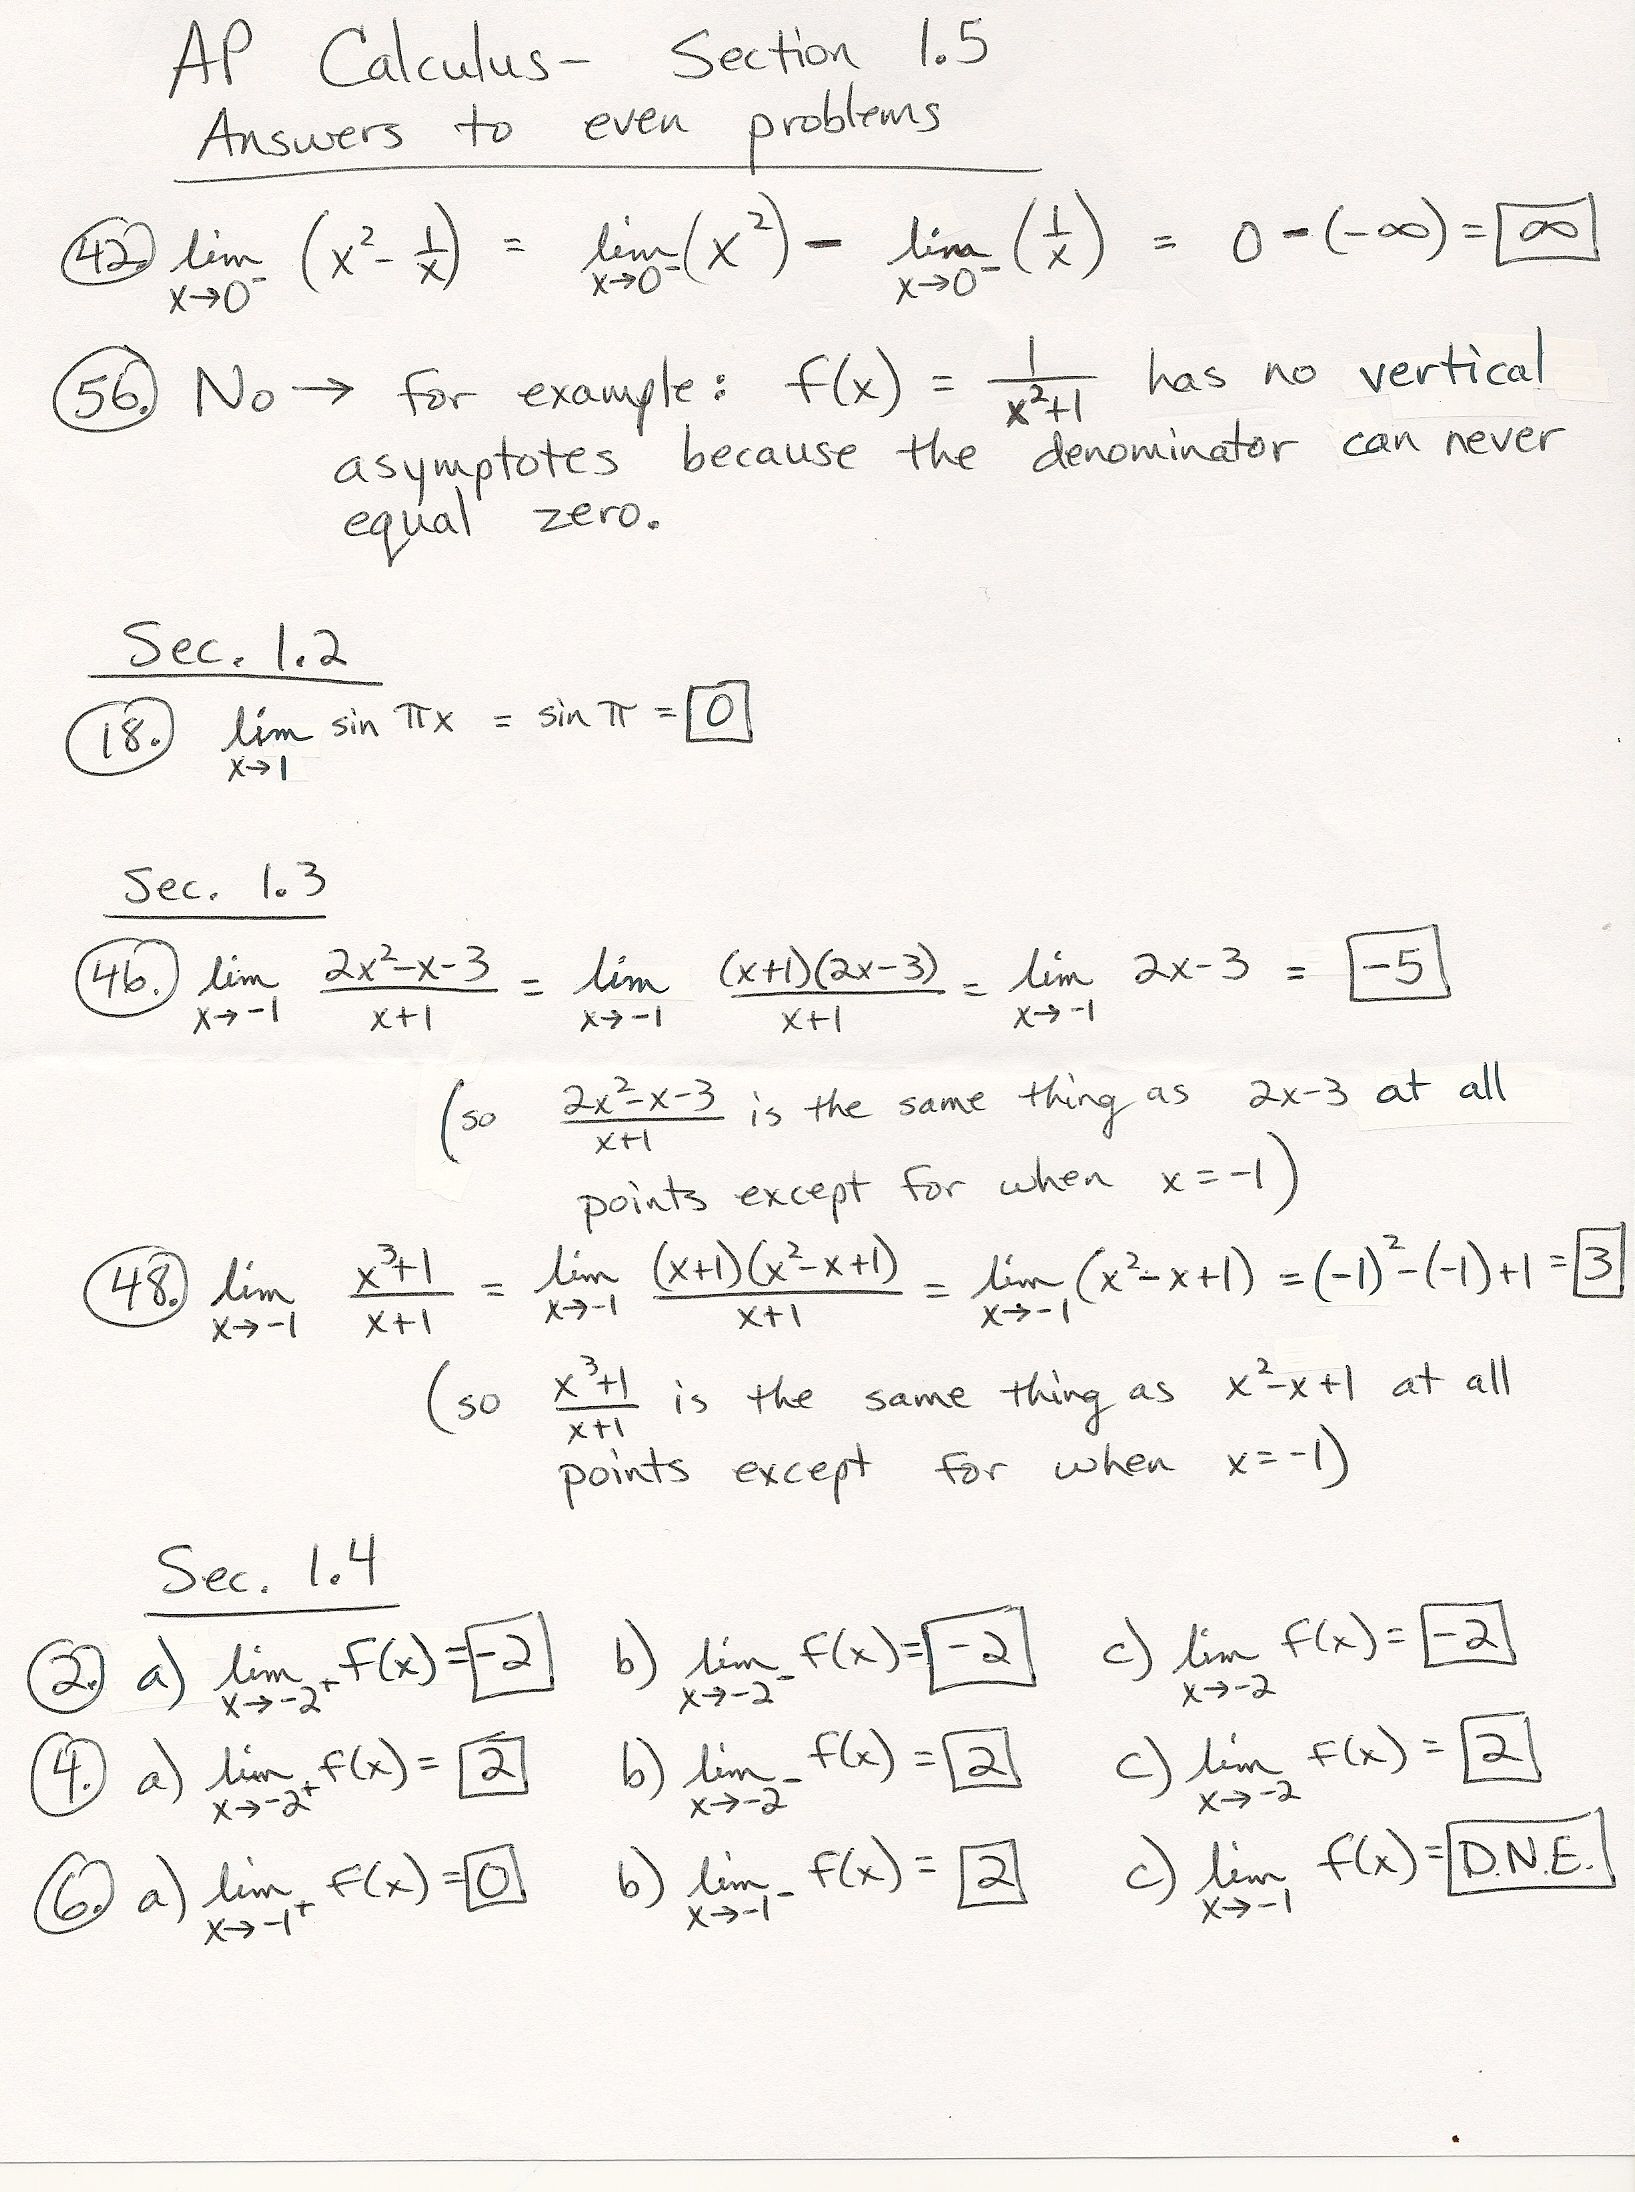 Unit 1 Answers To Even Problems